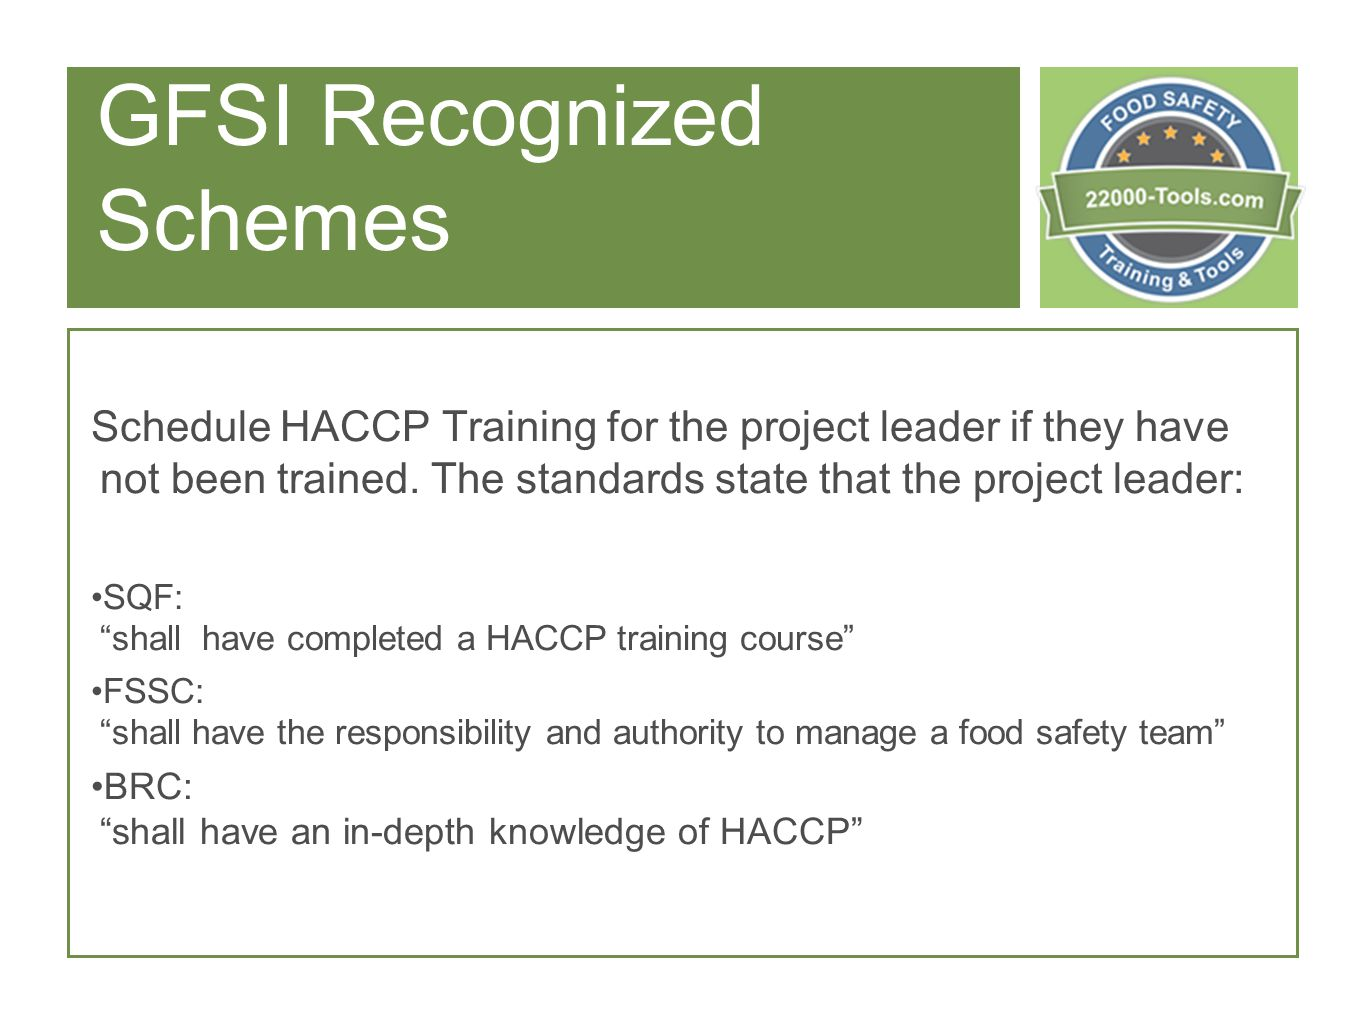 GFSI Recognized Schemes Schedule HACCP Training for the project leader if they have not been trained.